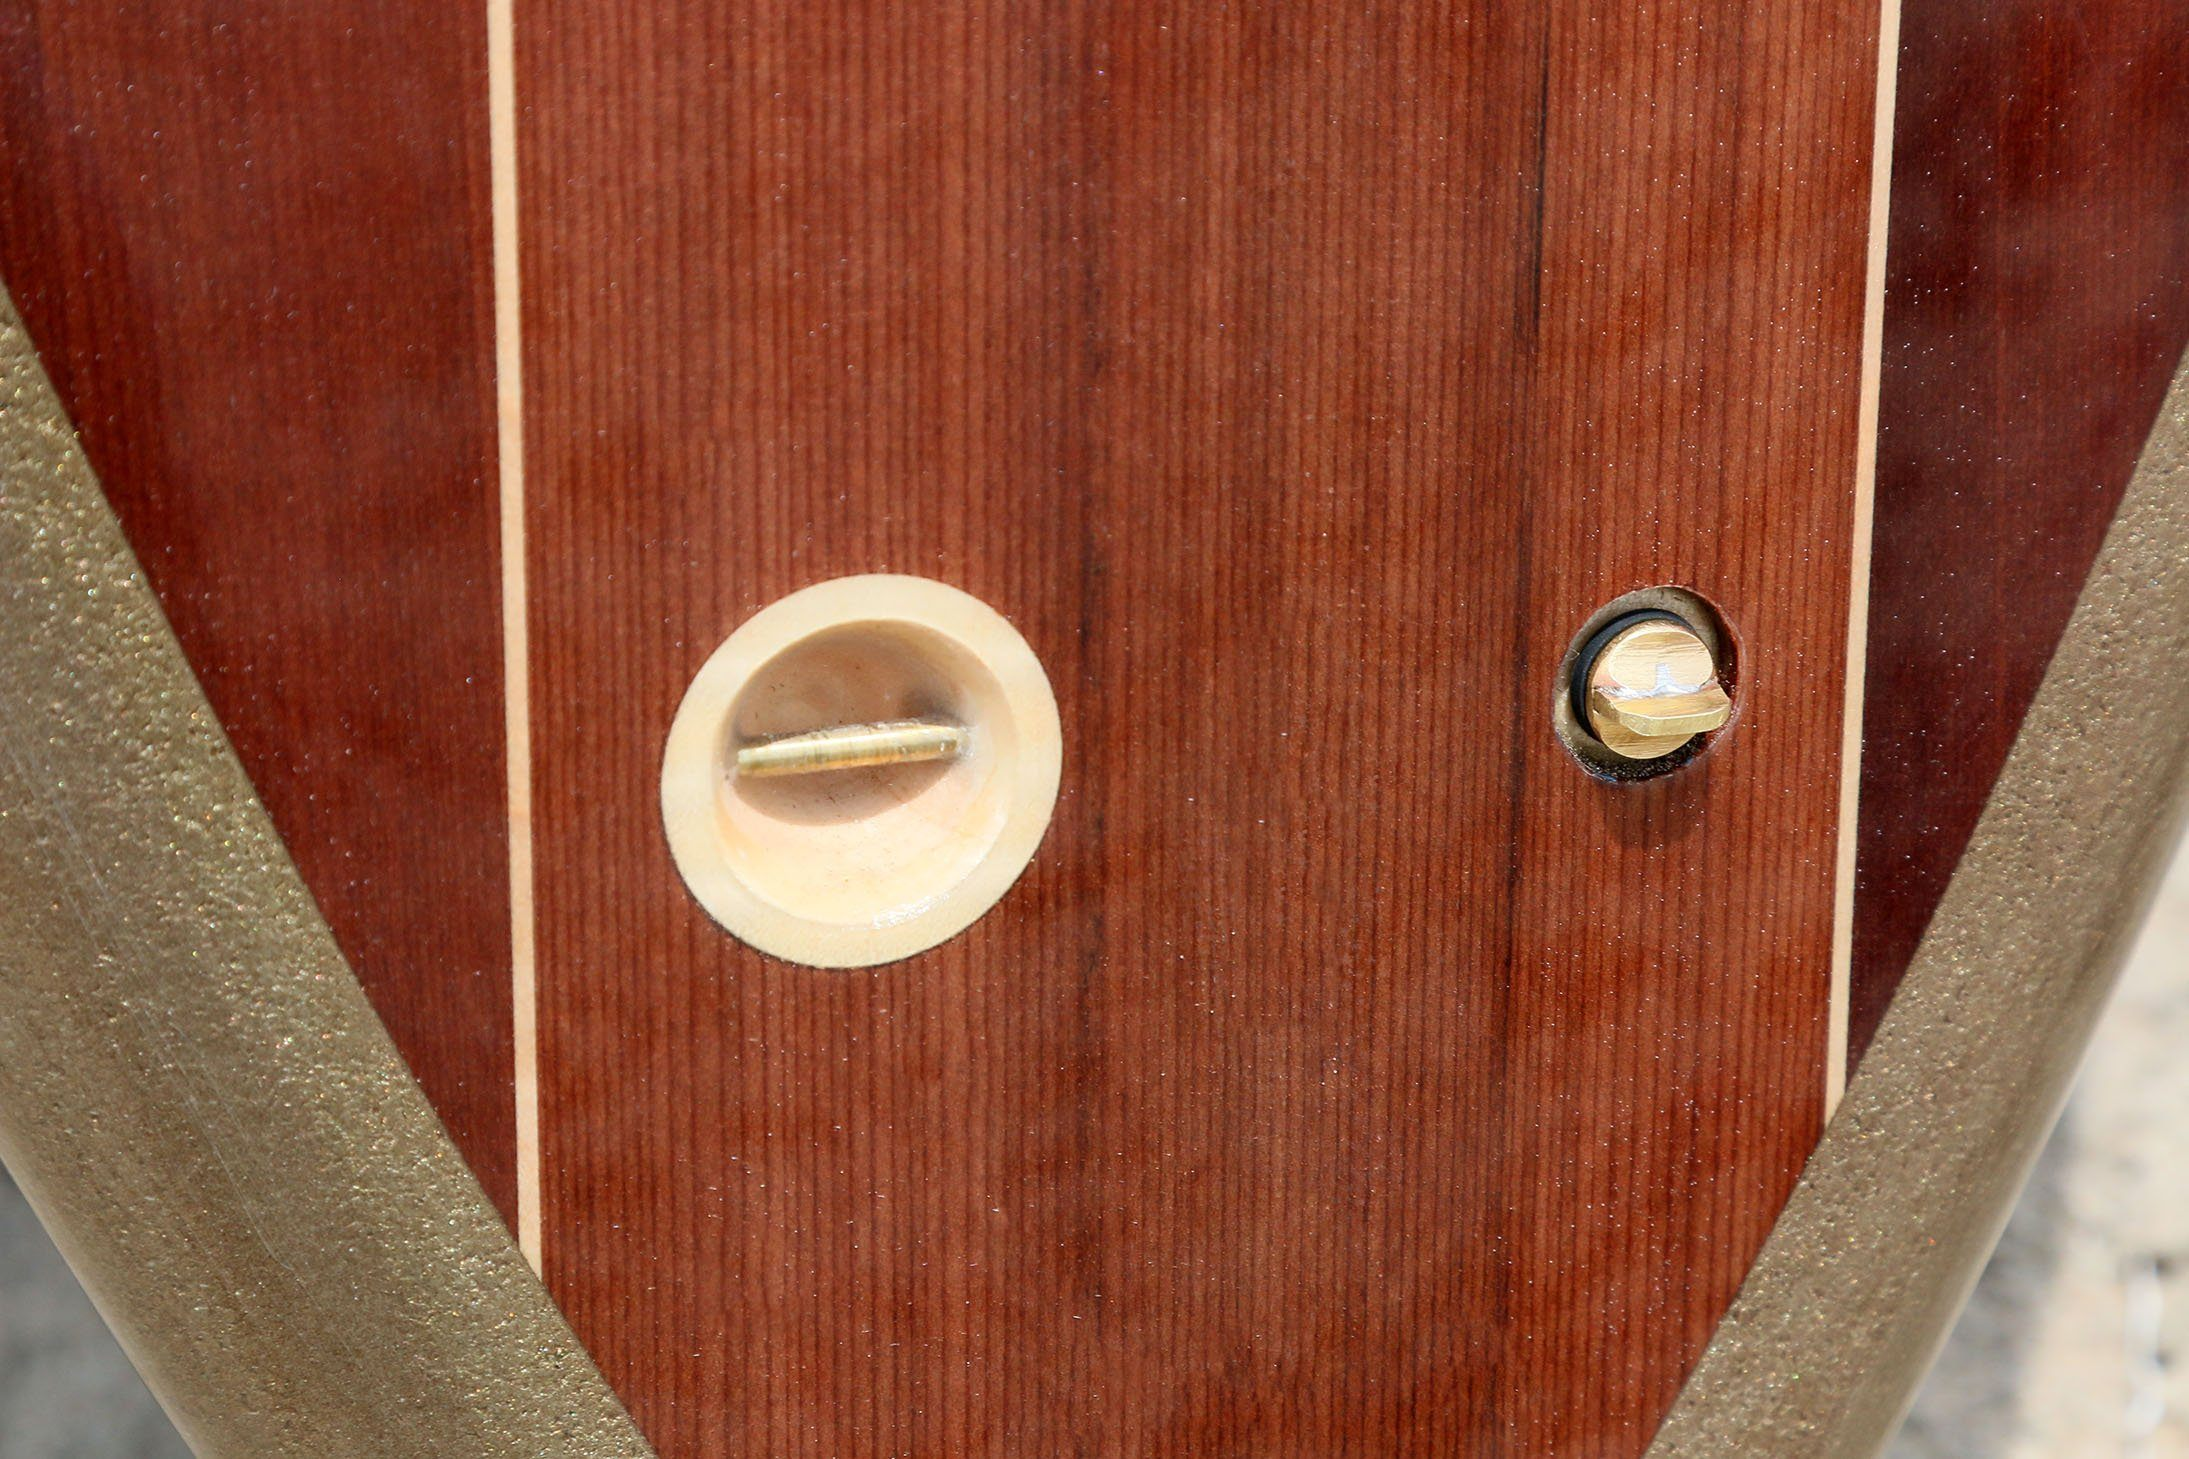 Vent plug on a Ventana surfboard